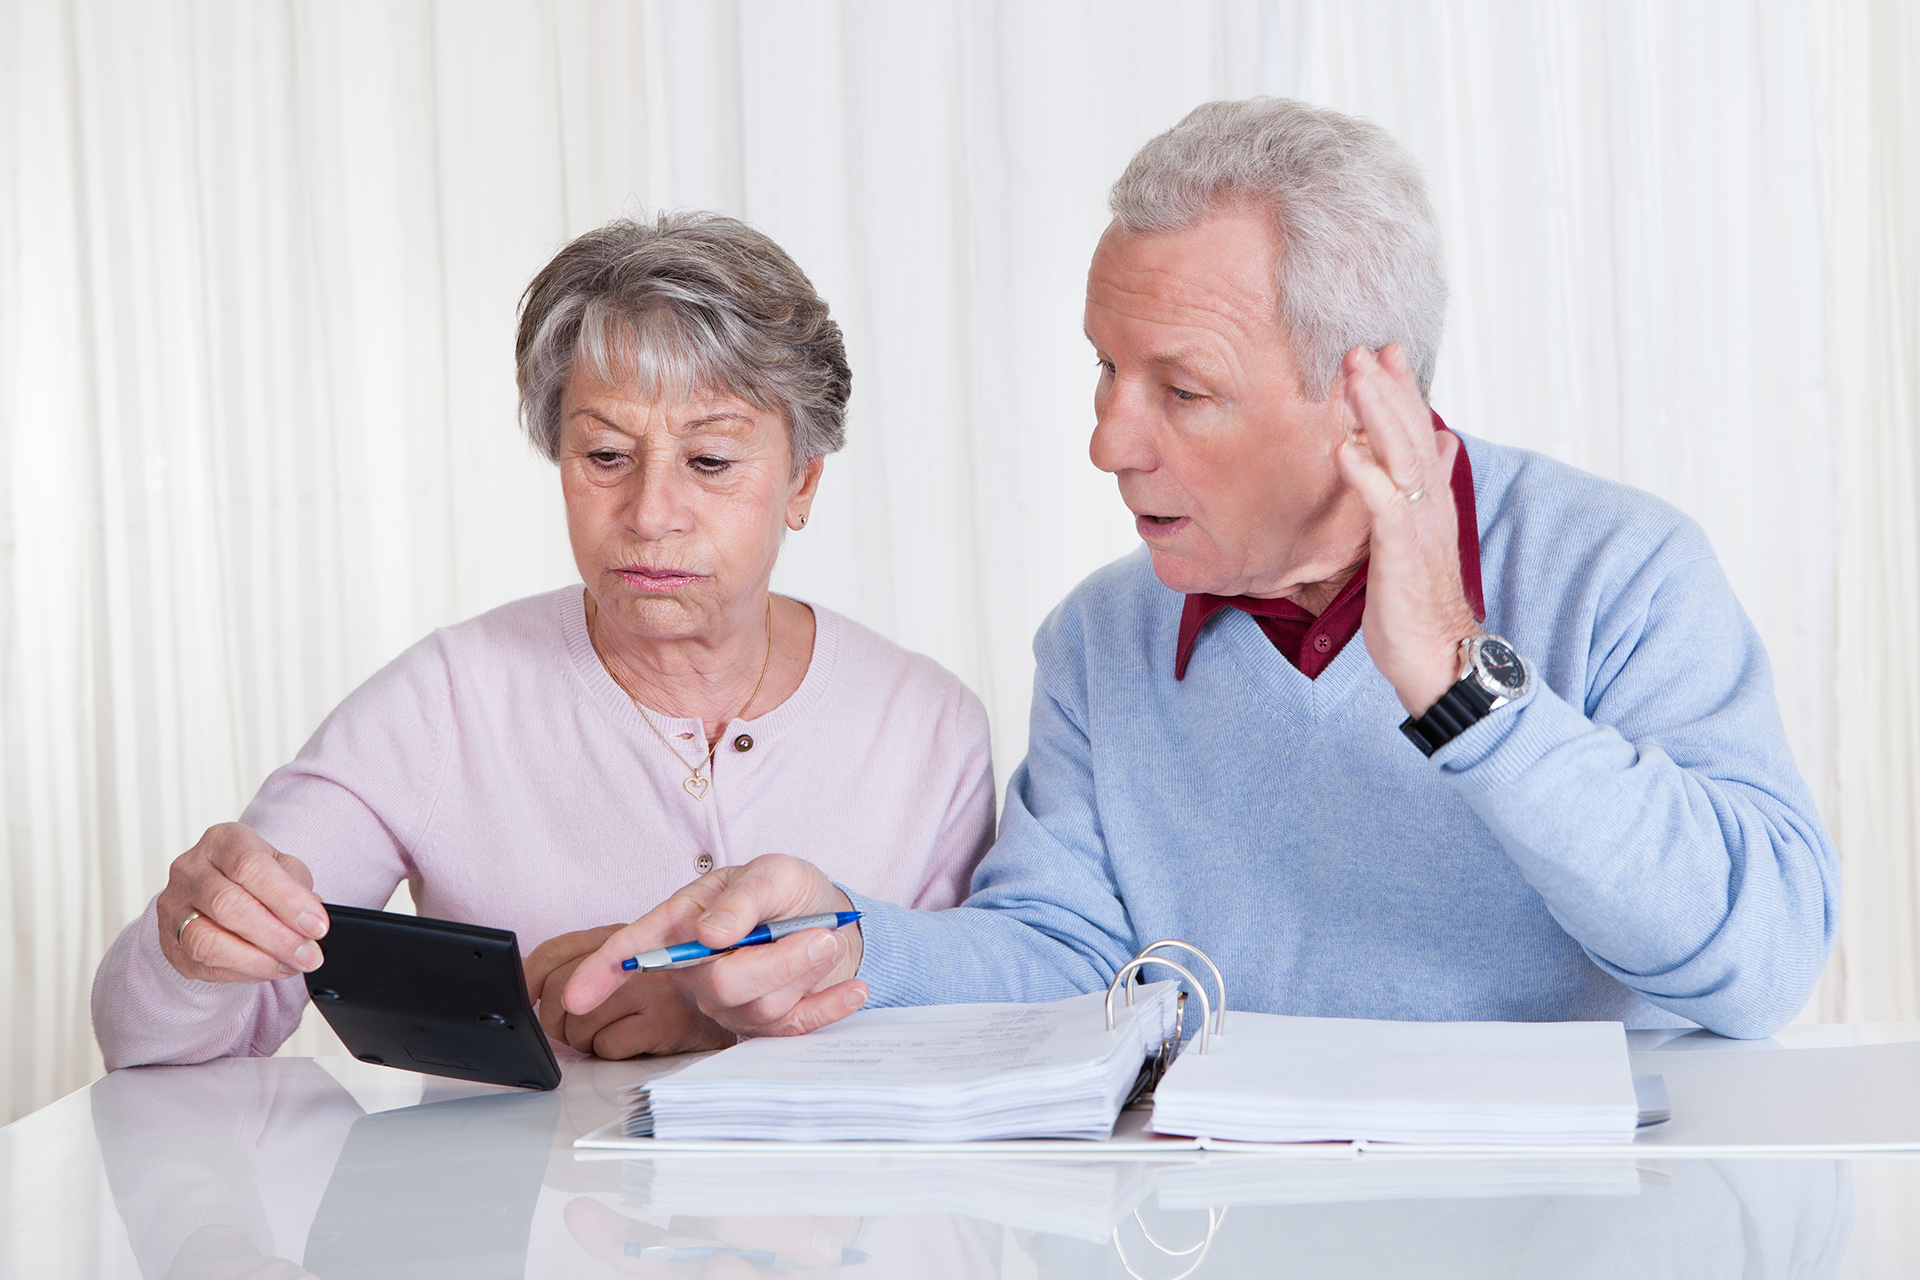 Baby Boomers: Are These 4 Key Items In Your Retirement Plan?